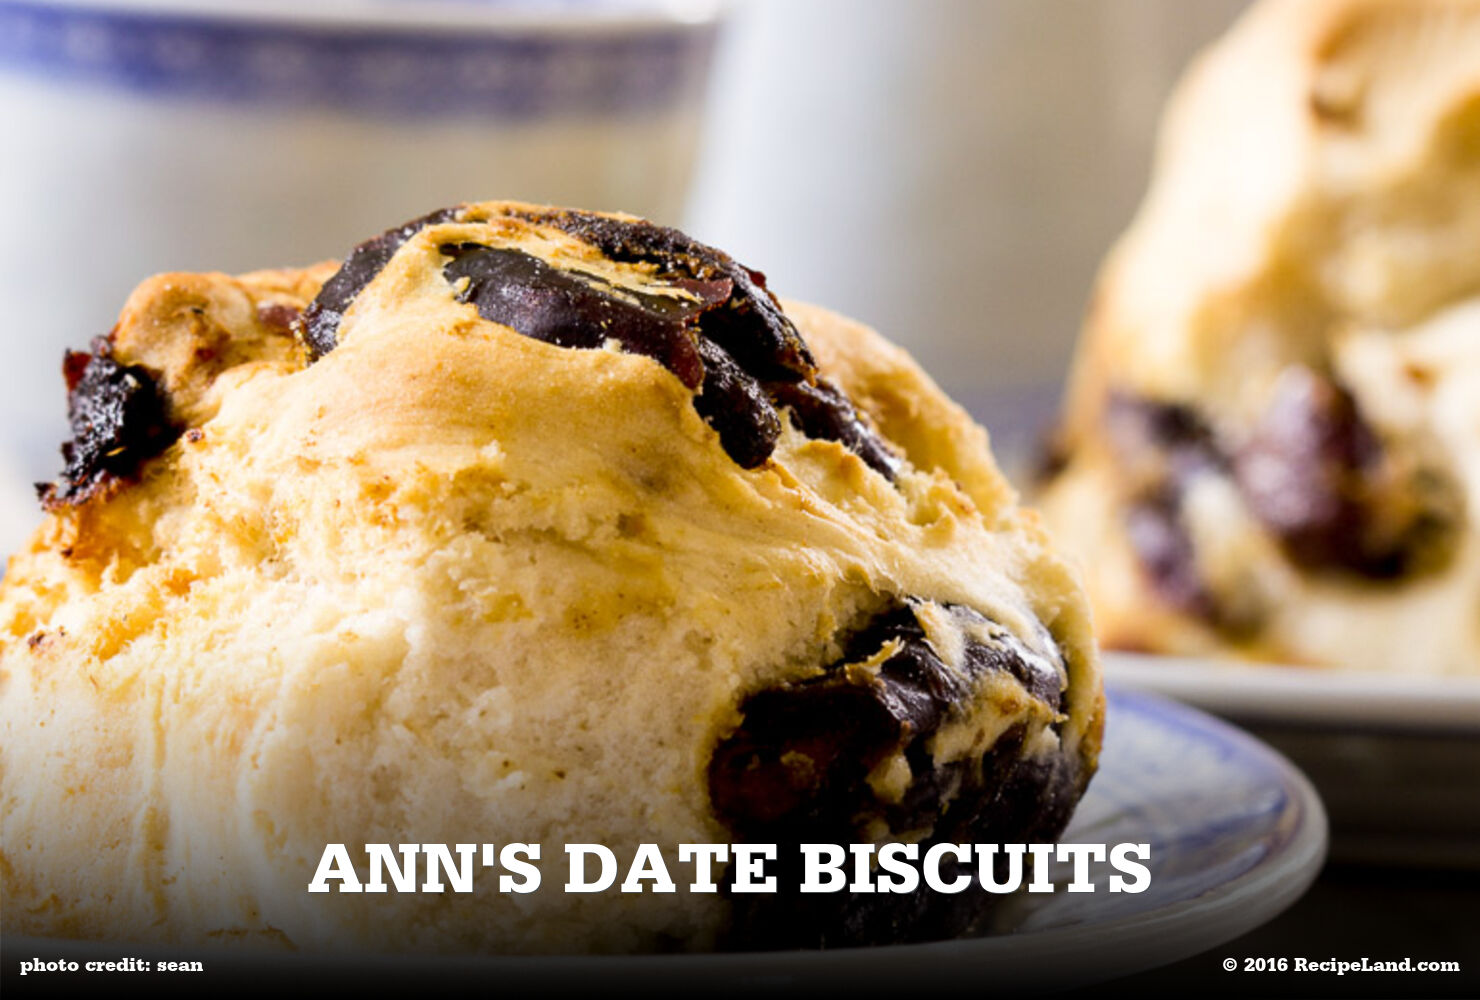 Ann's Date Biscuits